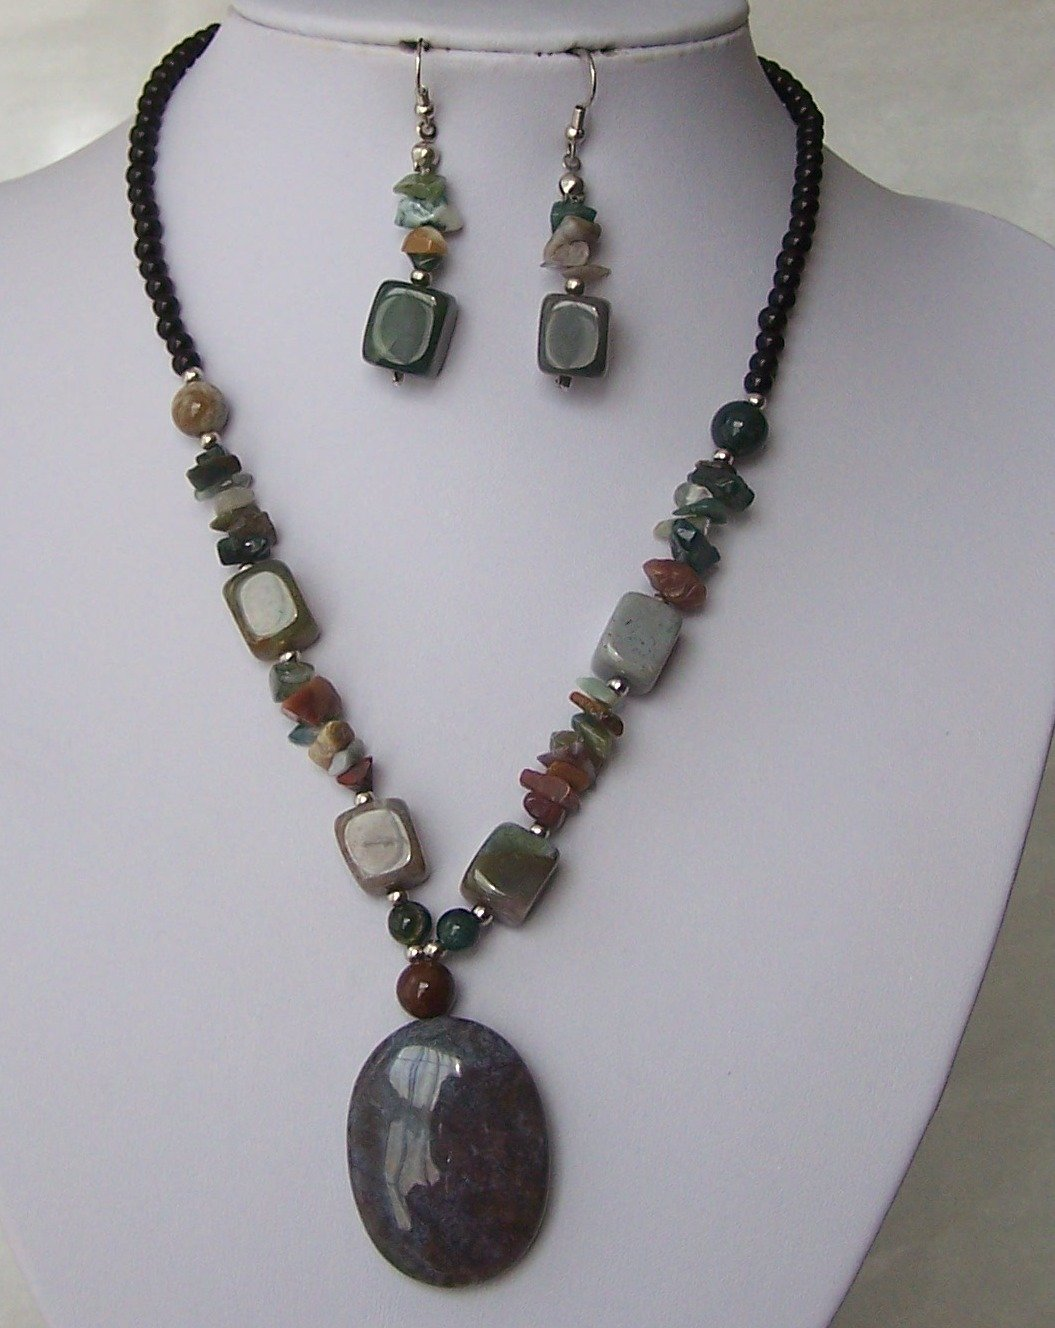 Green Mixed Natural Gemstone Stone Western Semi Precious Semiprecious Necklace Set